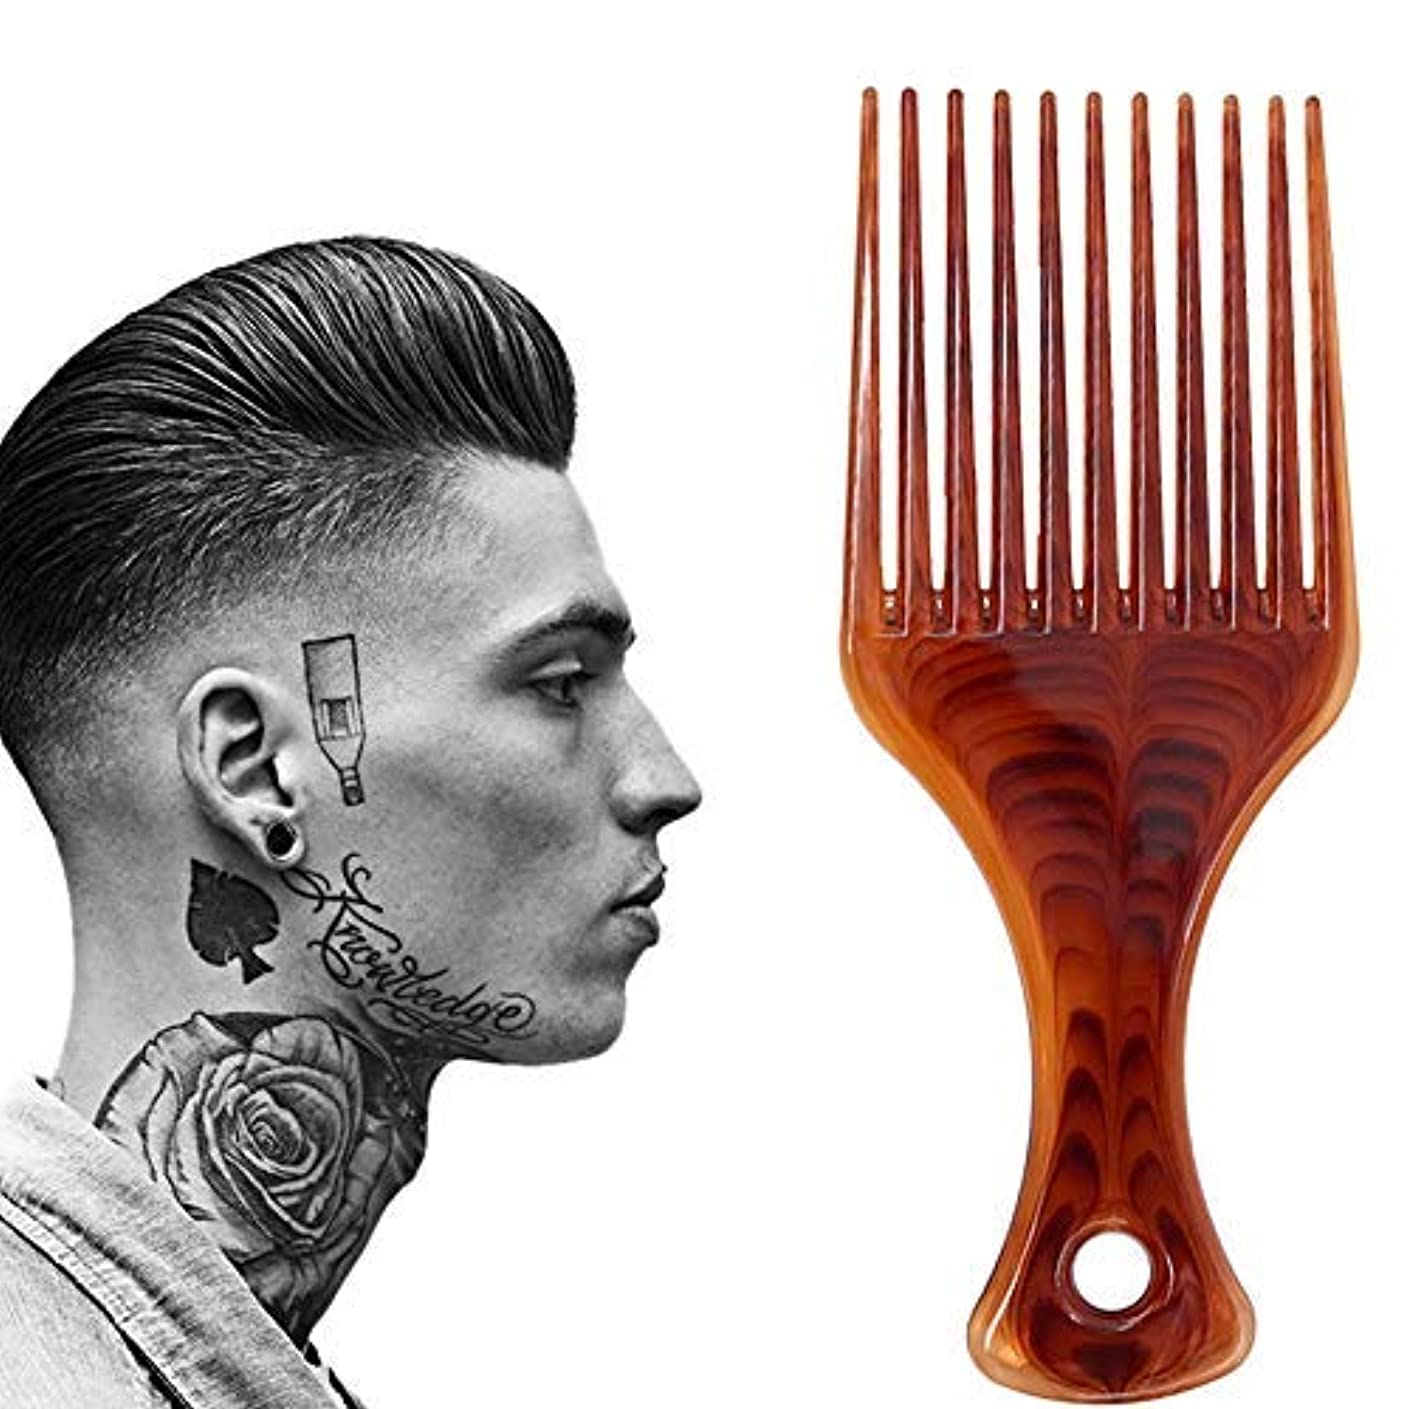 俳優二次決定するLightweight Afro Comb,Amber Afro Pick Hair Comb,Plastic Hair Brushes for Man & Woman Hairdressing Styling [並行輸入品]